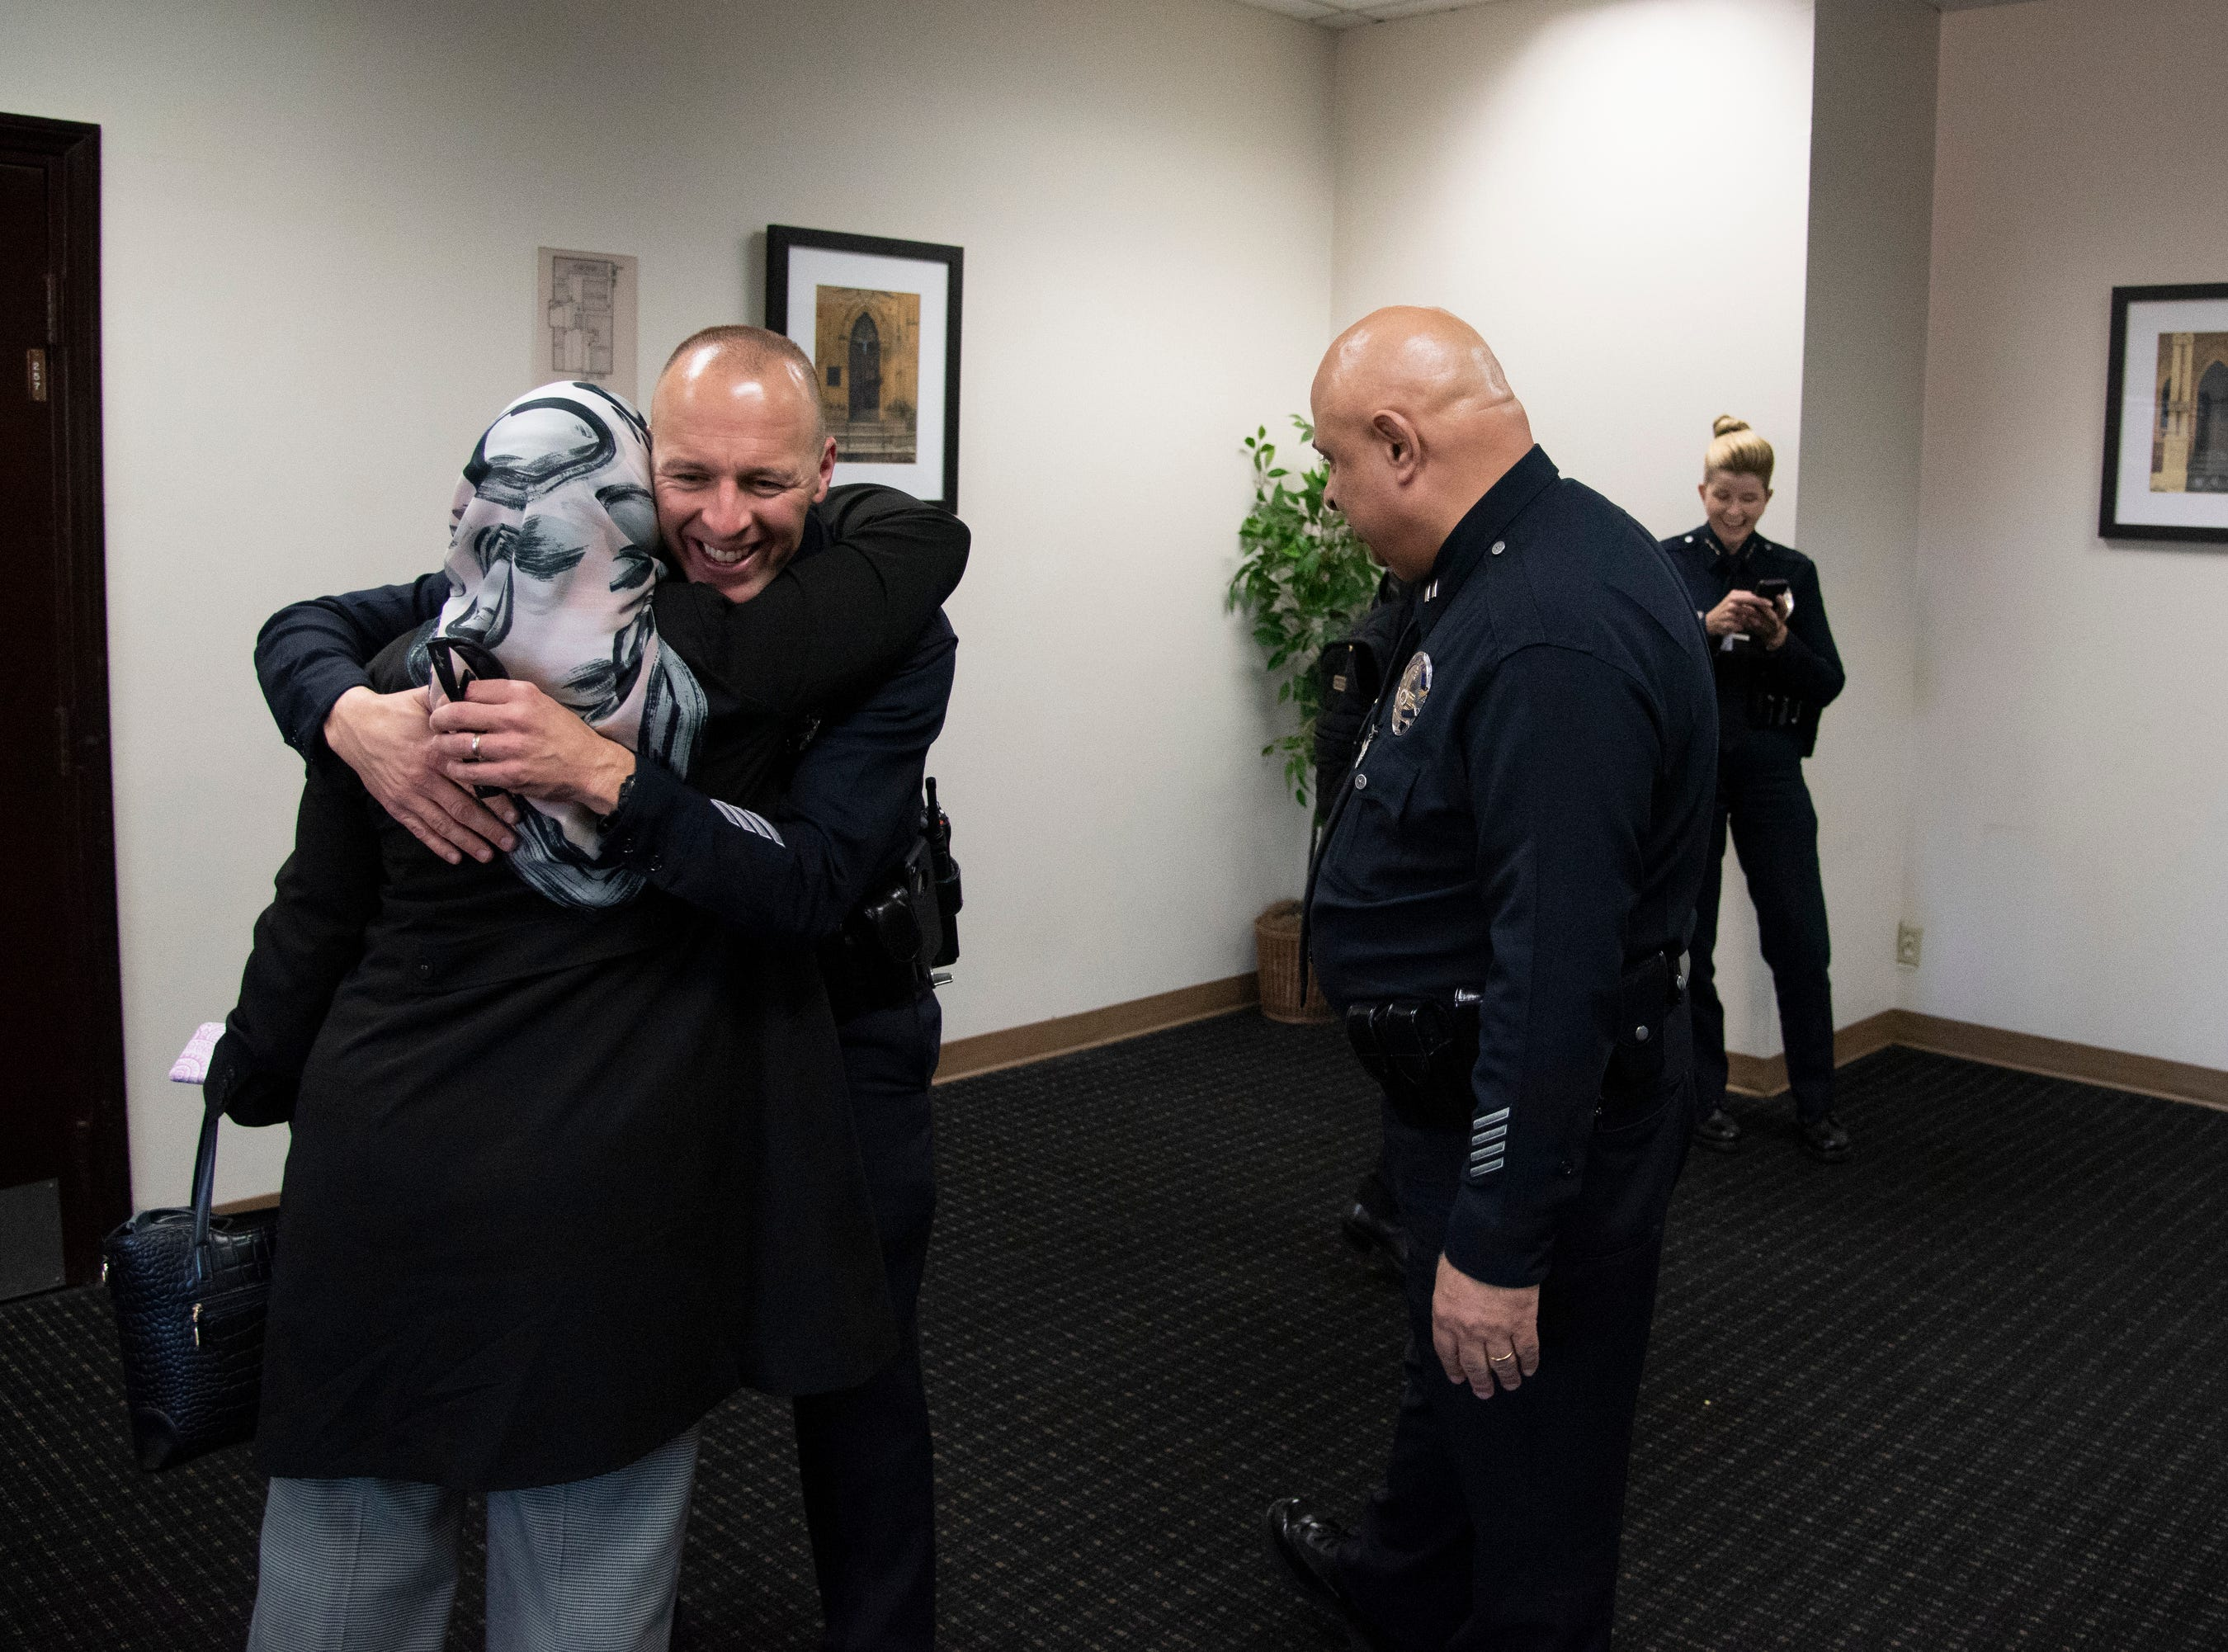 Hedab Tarifi, previous chairperson of the Southern California Islamic Center meet and talk with various LAPD officers before a press conference at the Southern California Islamic Center in Los Angeles, Calif. on March 15, 2019.